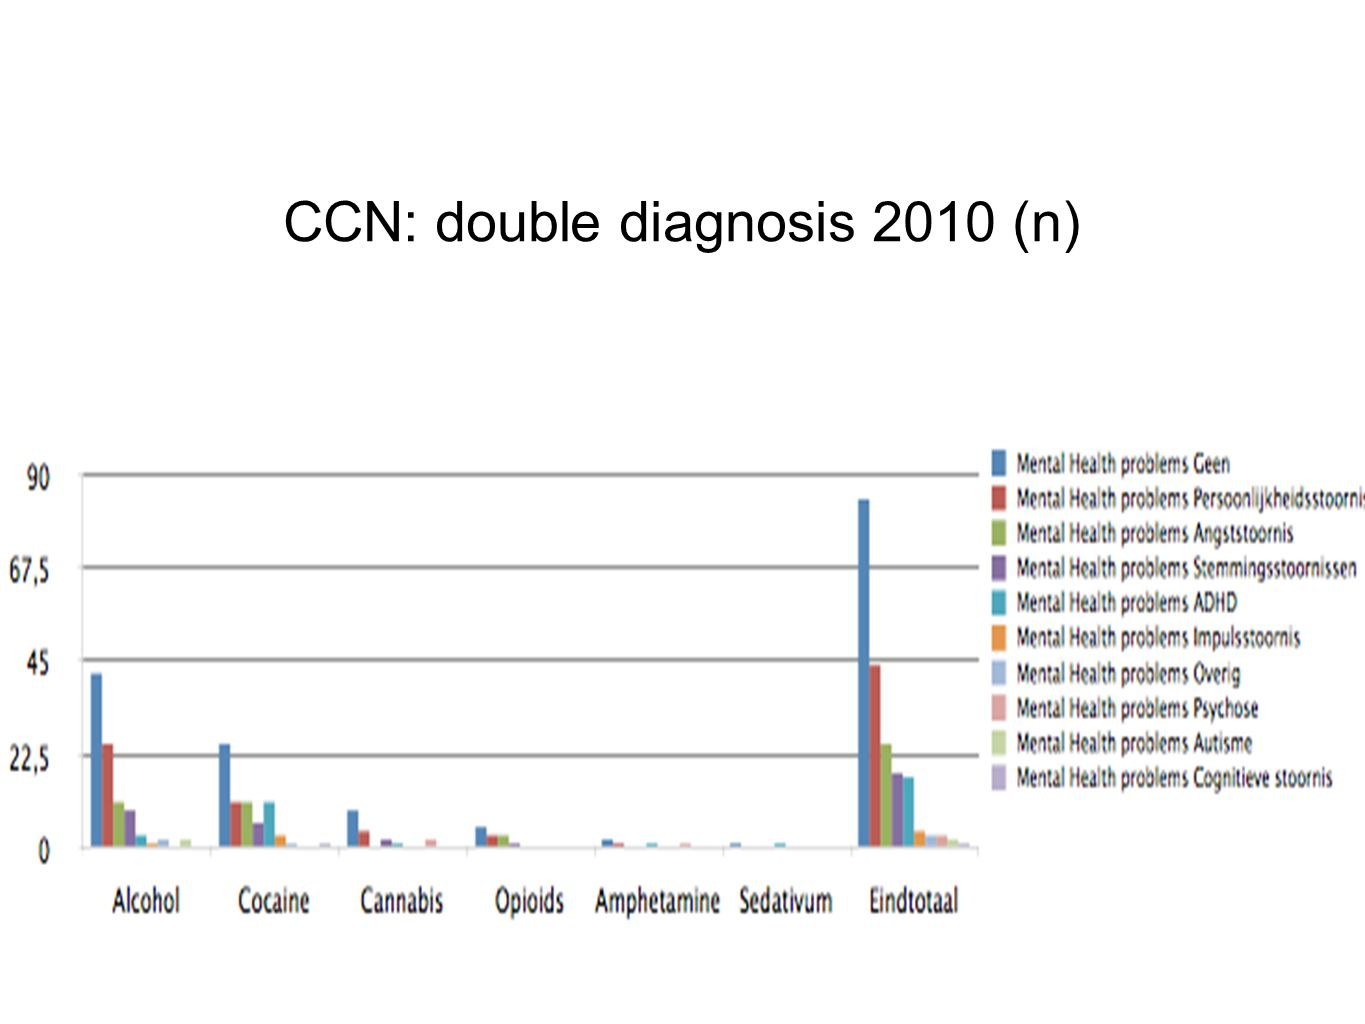 CCN: double diagnosis 2010 (n)